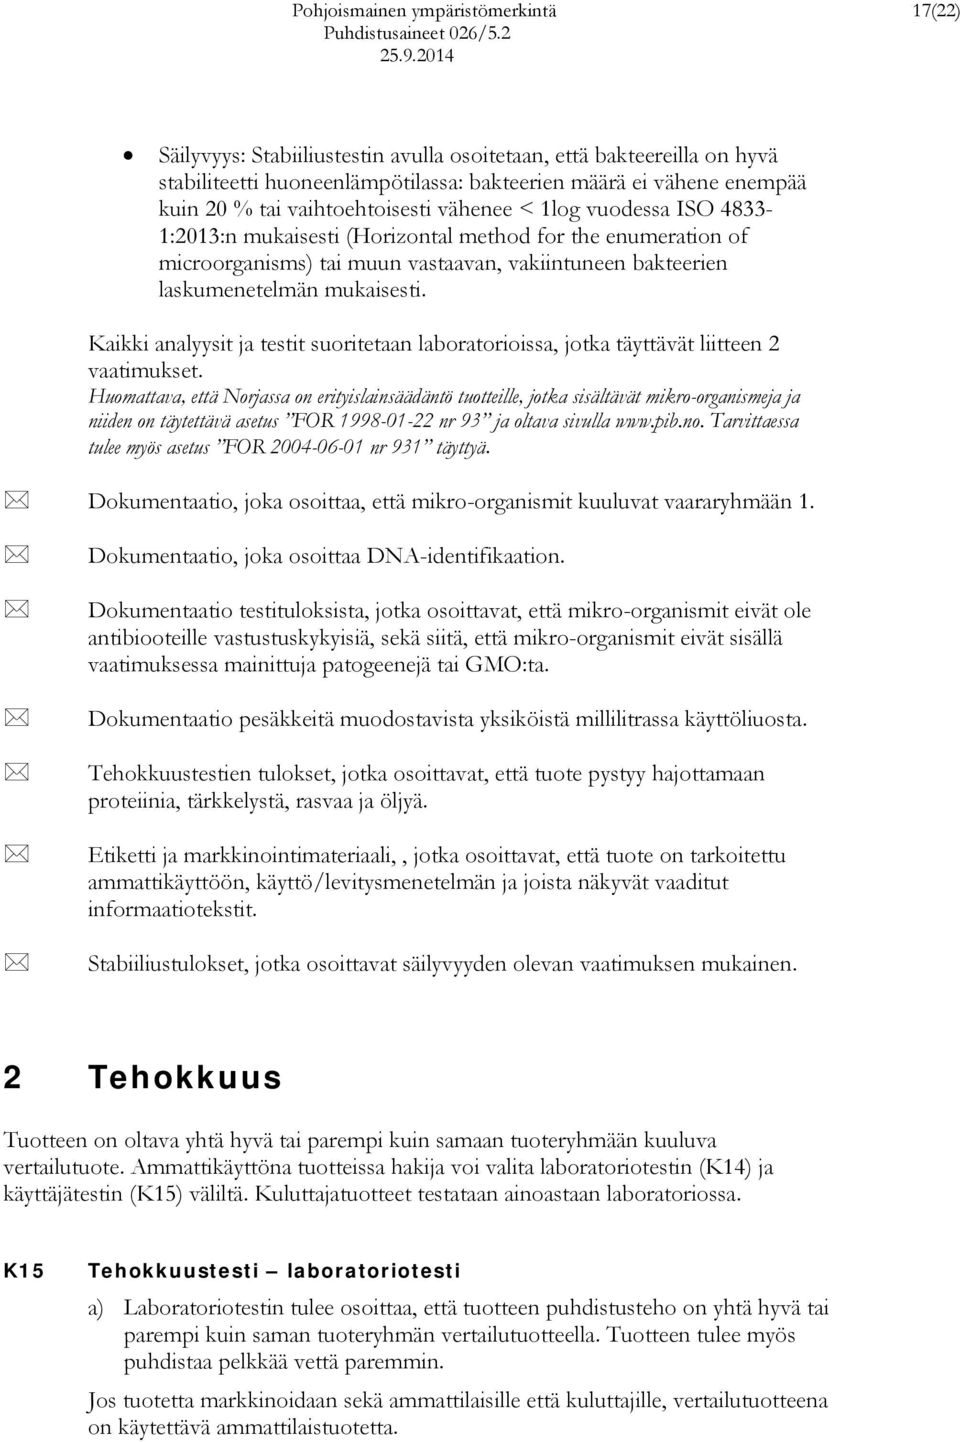 vuodessa ISO 4833-1:2013:n mukaisesti (Horizontal method for the enumeration of microorganisms) tai muun vastaavan, vakiintuneen bakteerien laskumenetelmän mukaisesti.